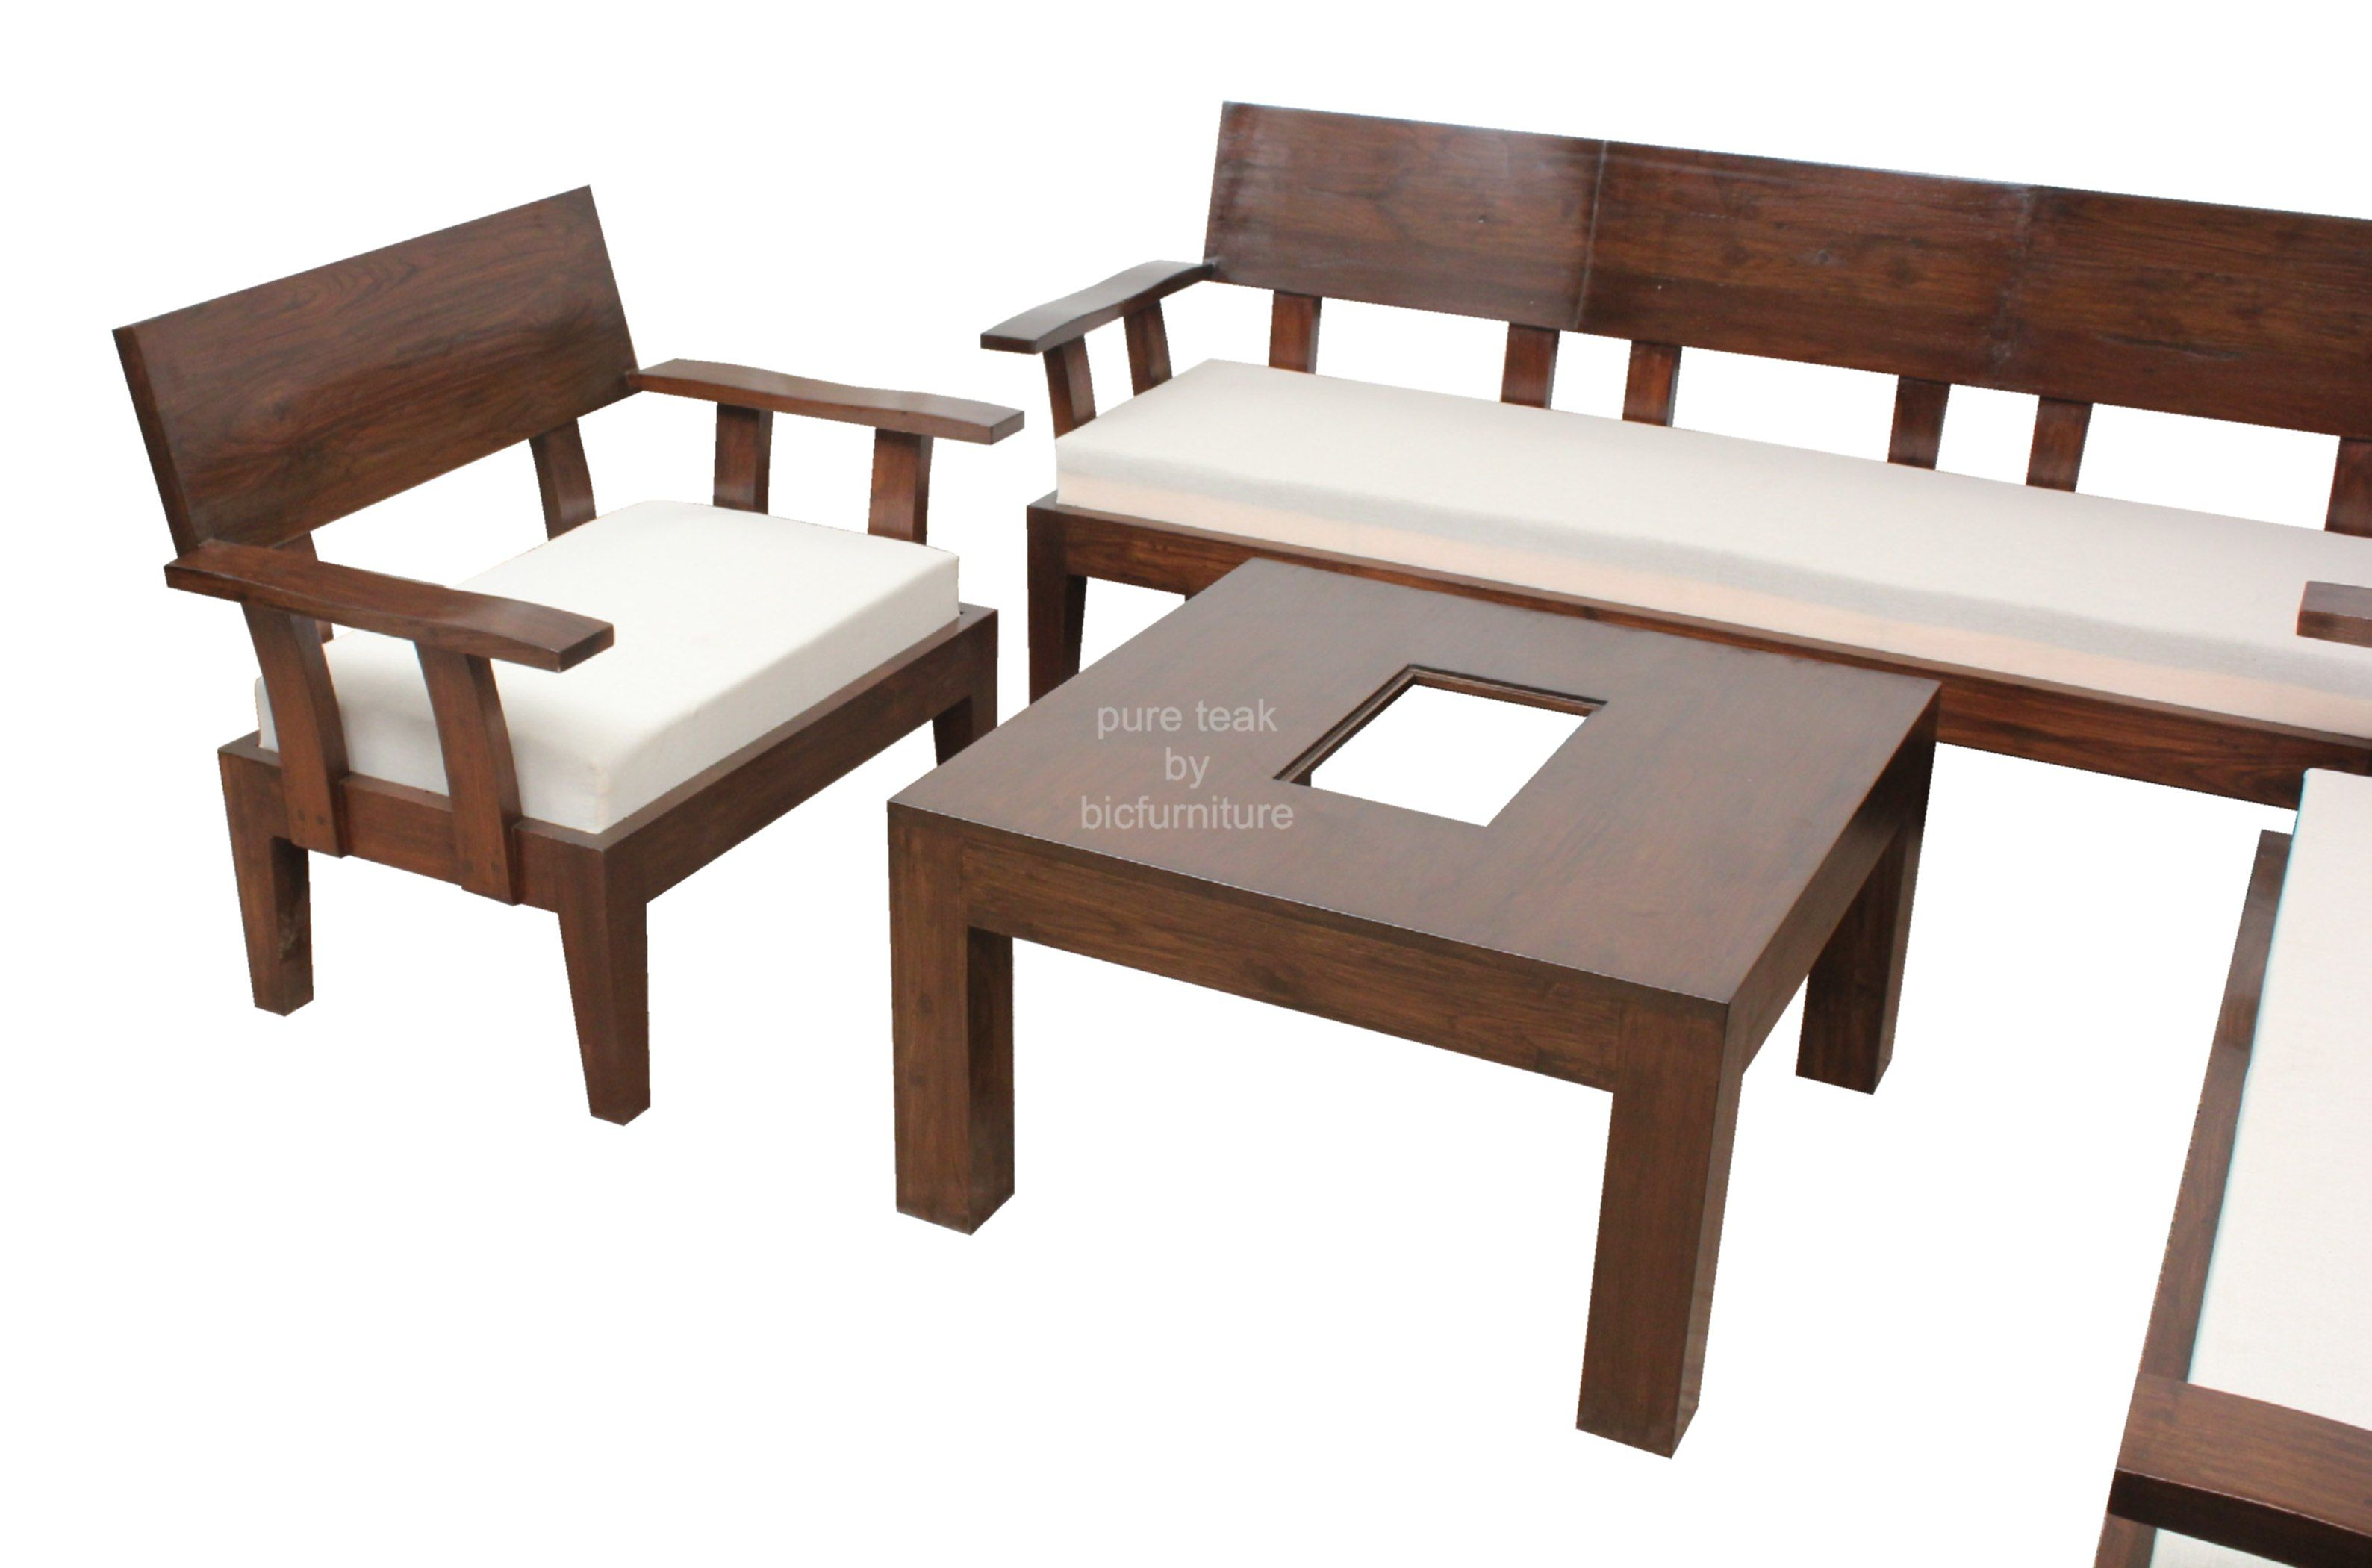 Teakwood Sofa Set With Centre Table Ws 13 In 2020 Furniture Sofa Set Sofa Set Designs Latest Wooden Sofa Designs